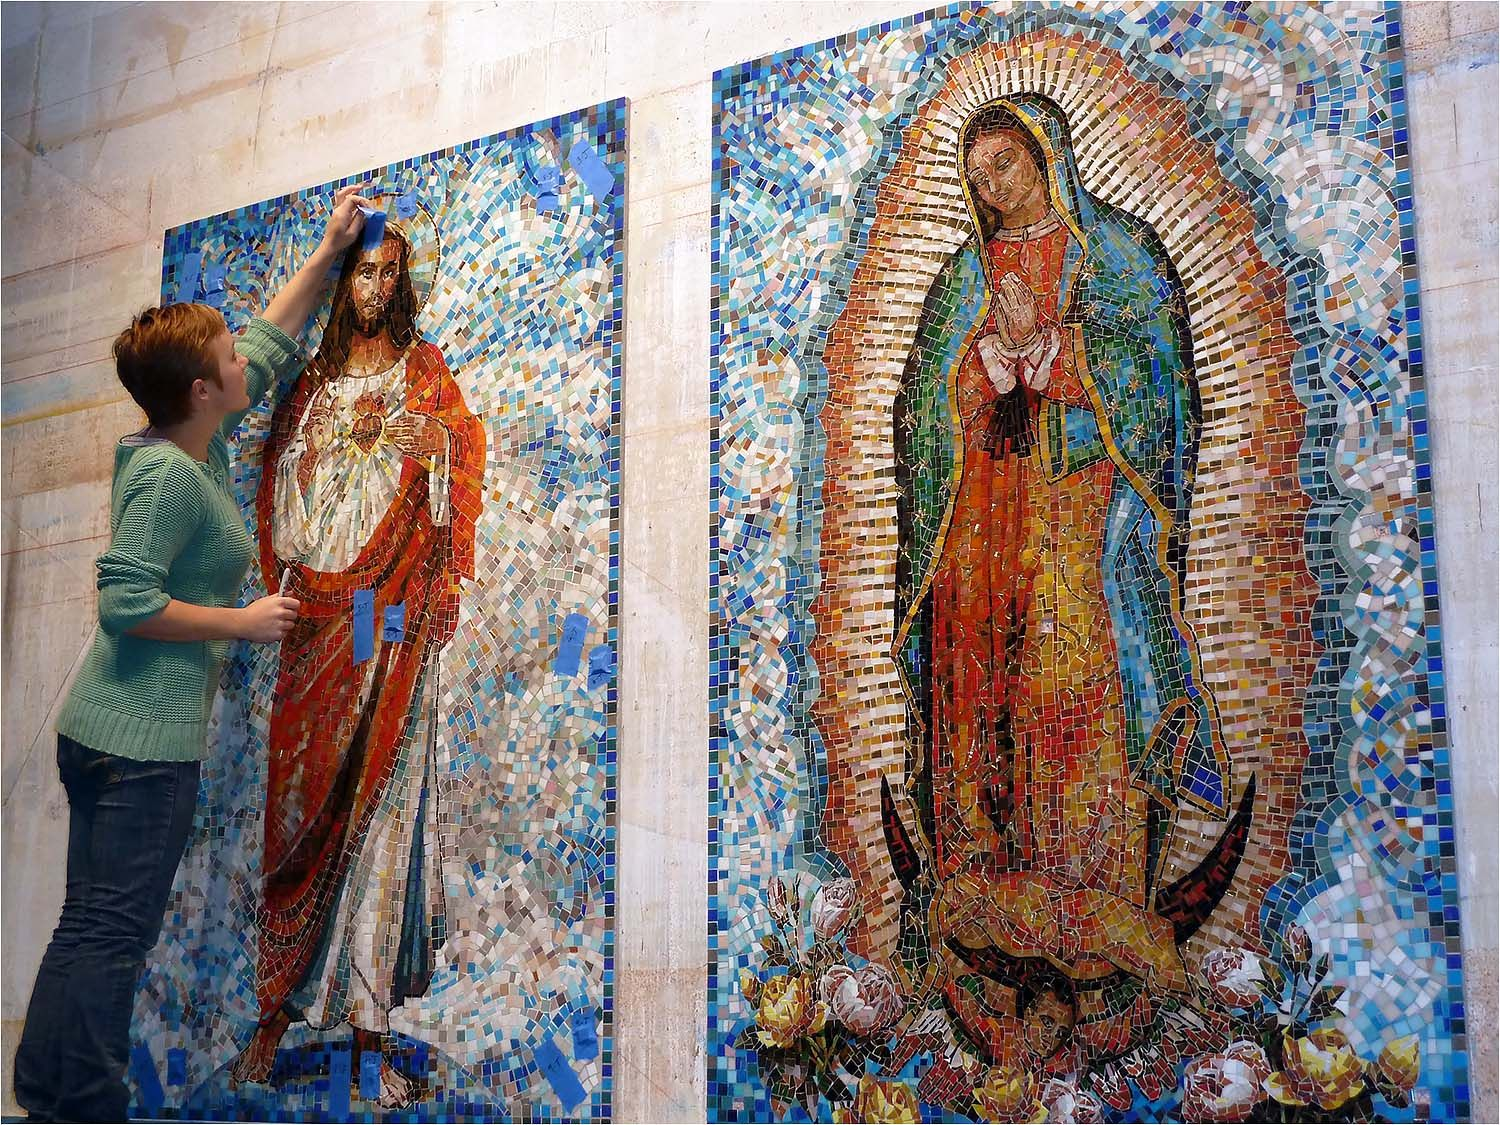 Mosaic art for the sacred heart church in san jose california mosaic art for the sacred heart church in san jose california iridescent glass tile dailygadgetfo Gallery